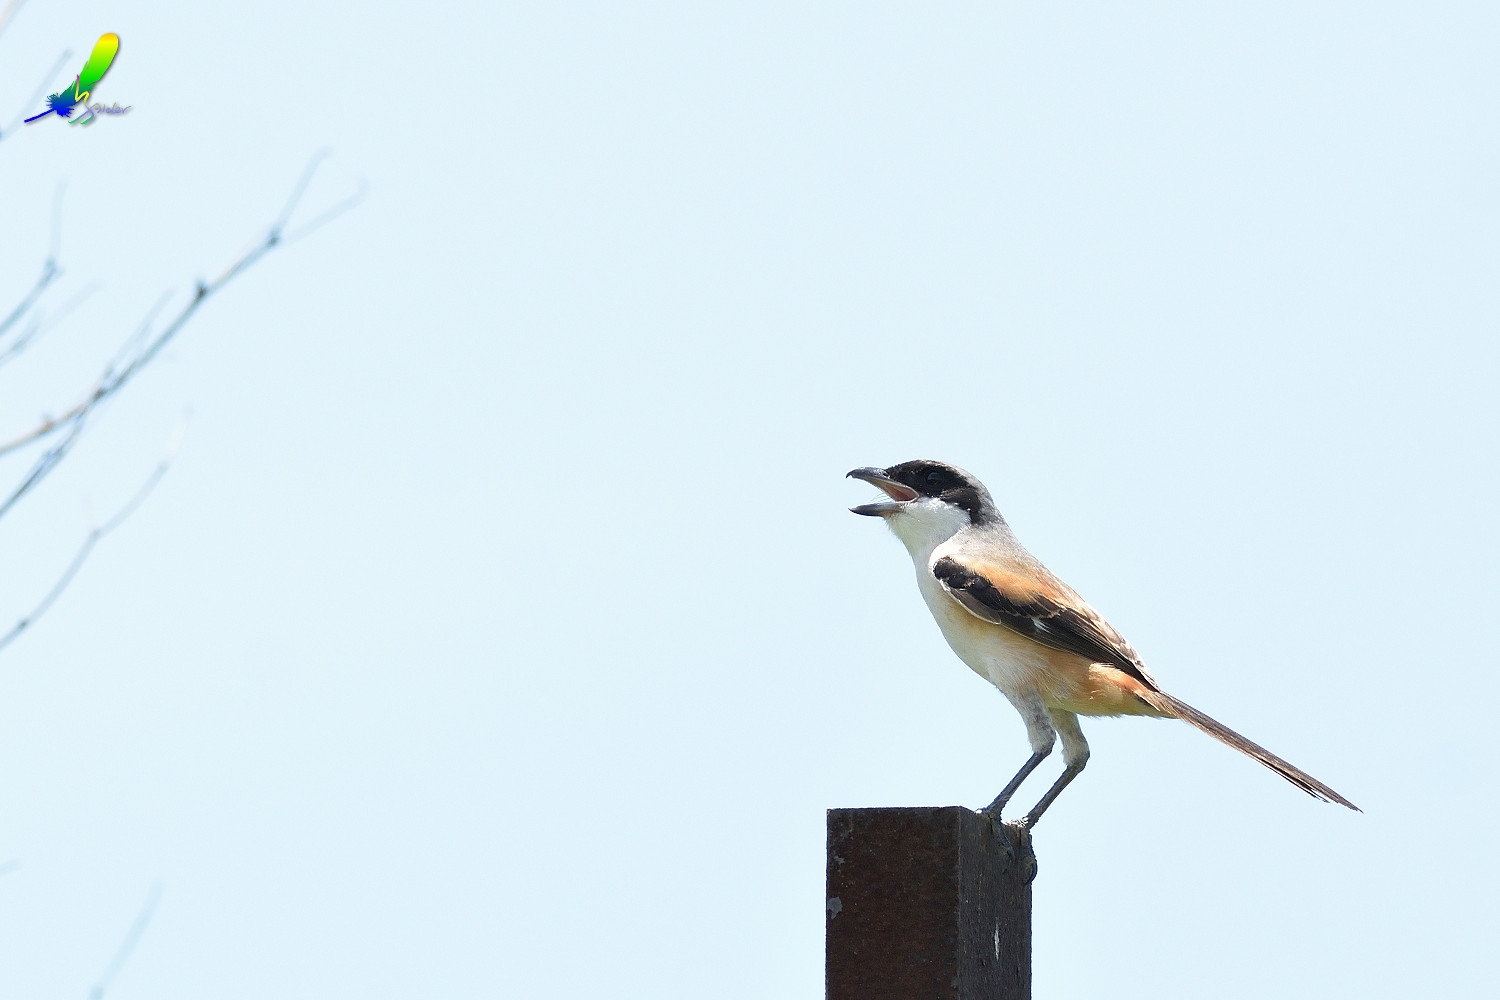 Long-tailed_Shrike_8535